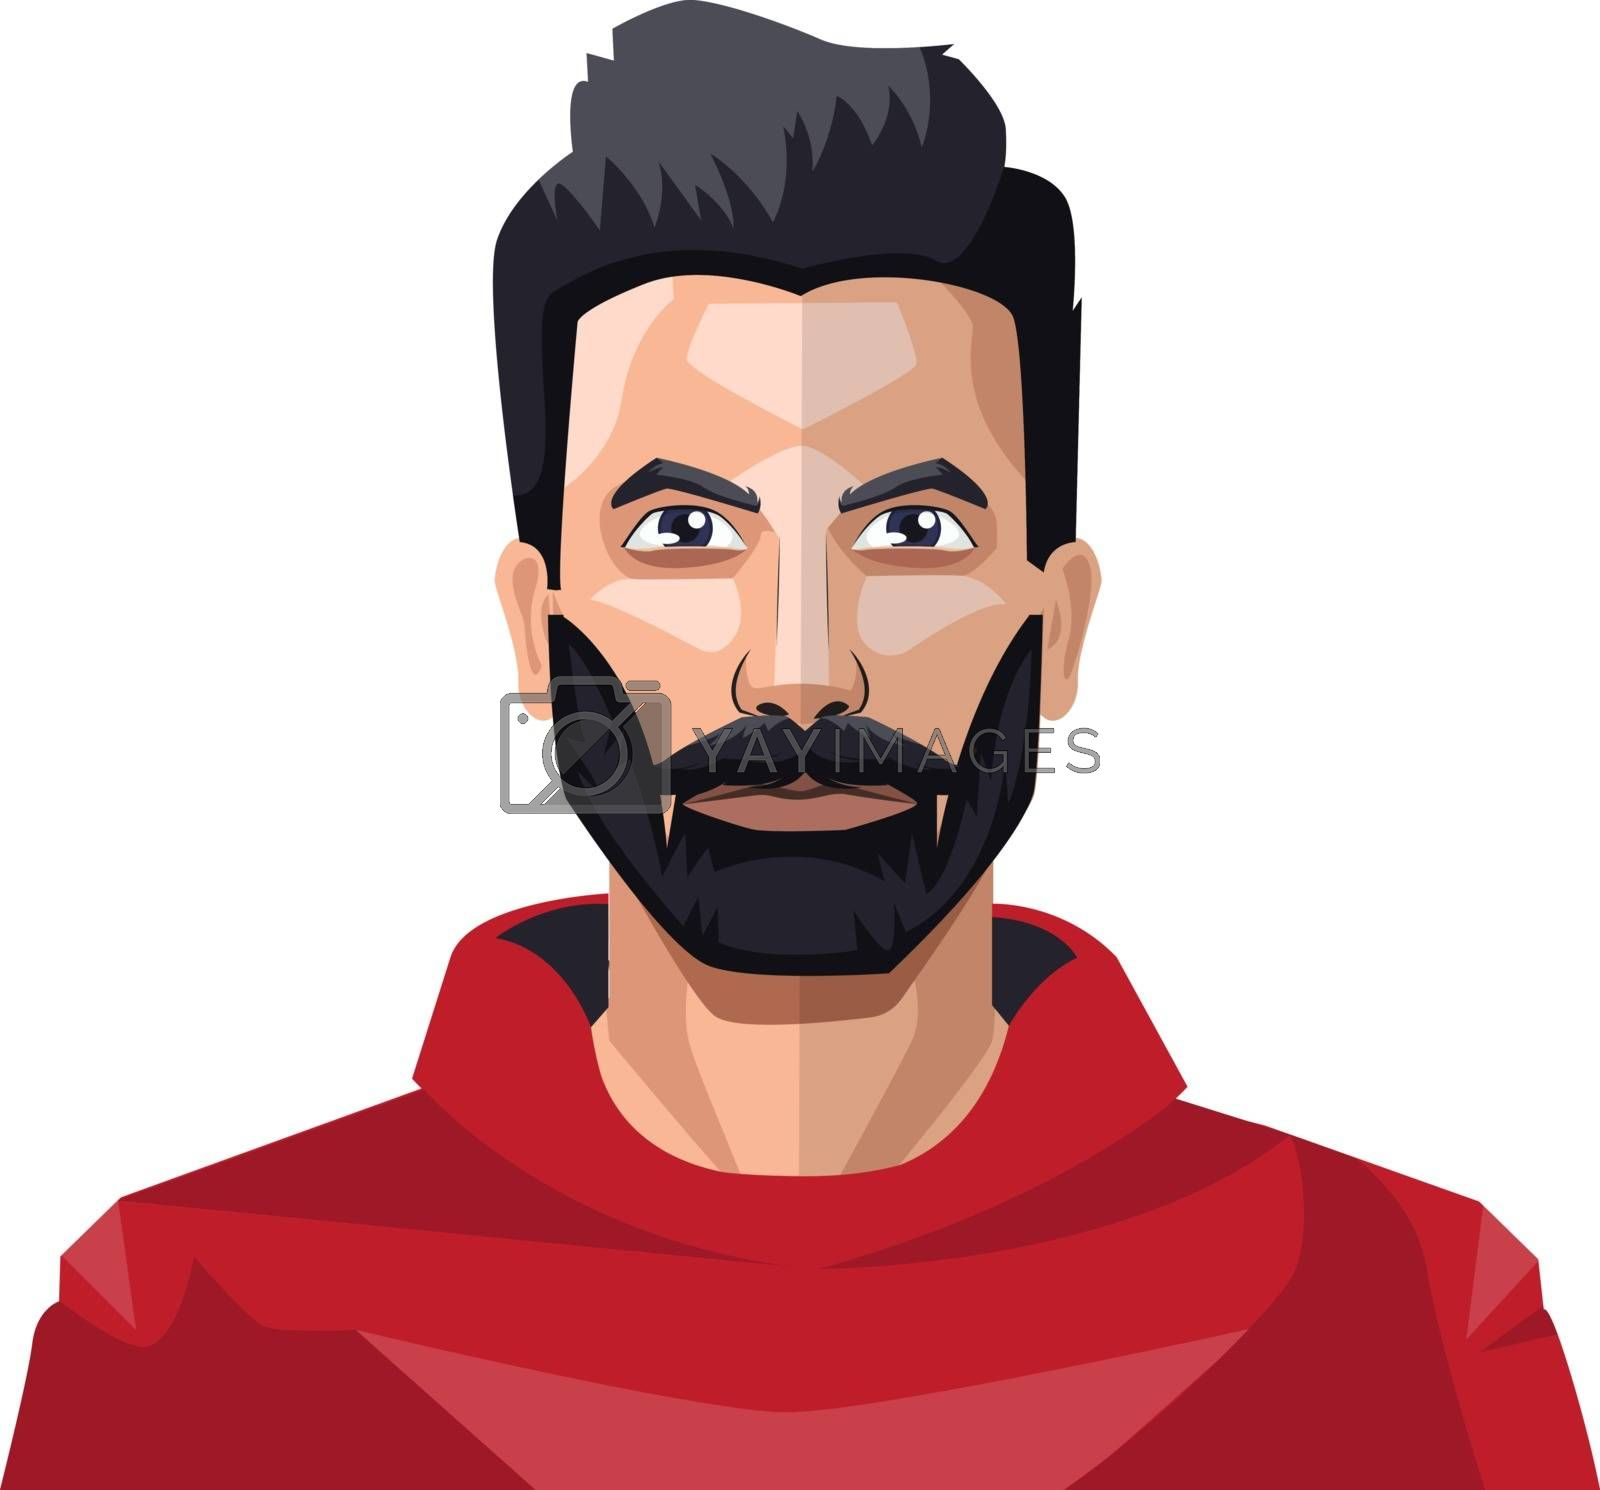 Royalty free image of Guy with a full beard in the red shirt illustration vector on wh by Morphart